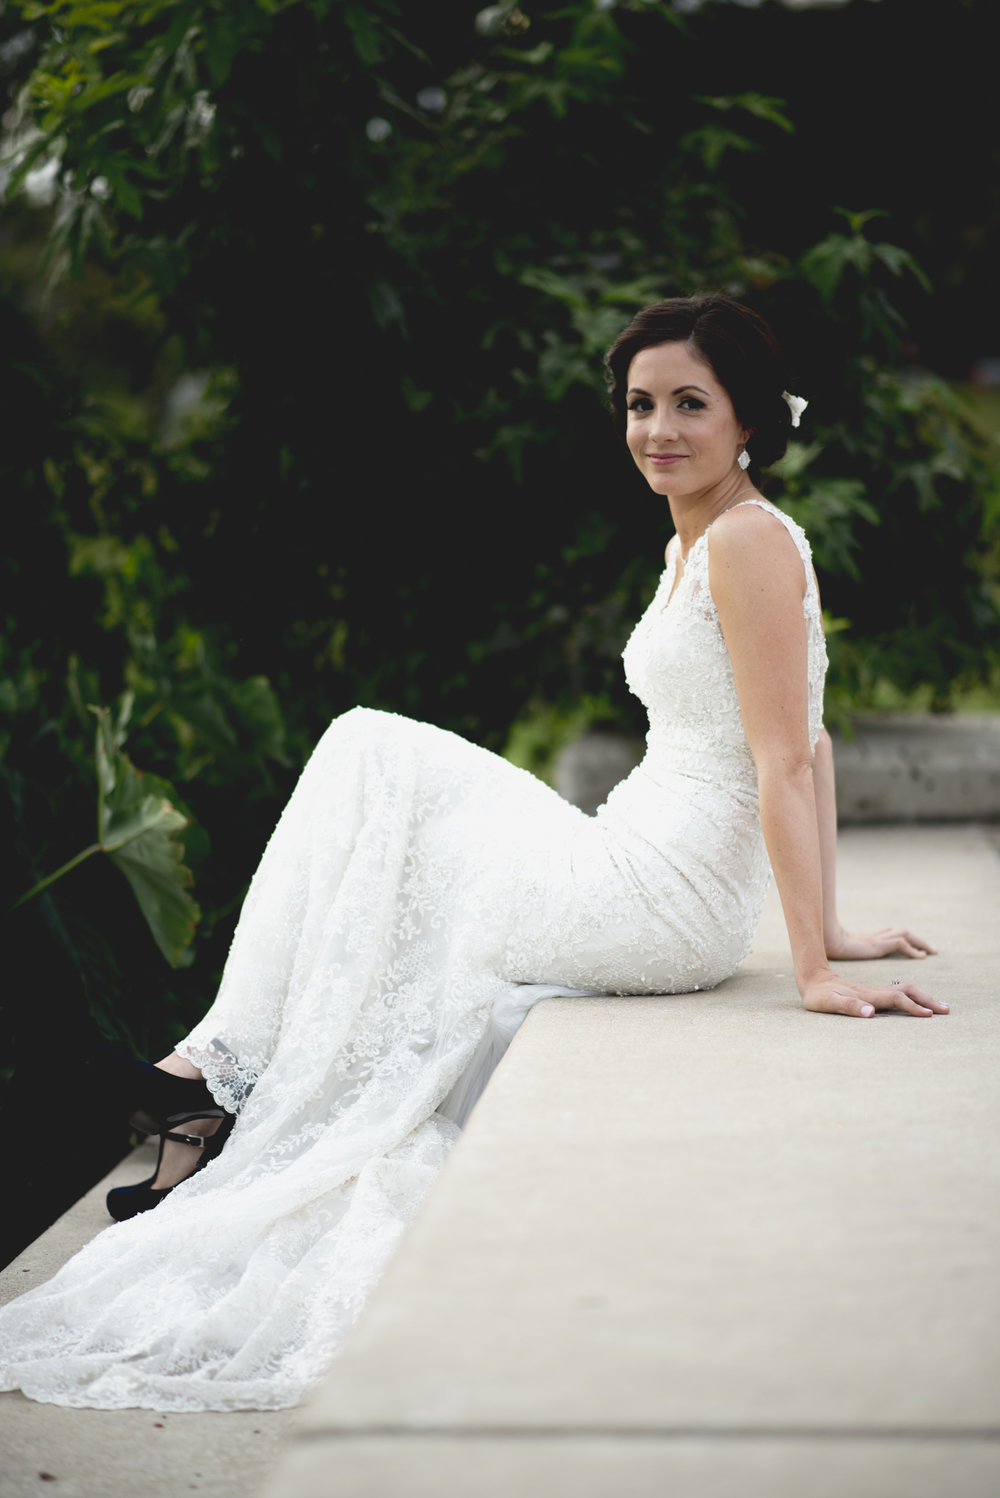 ashley_bridal-17.jpg